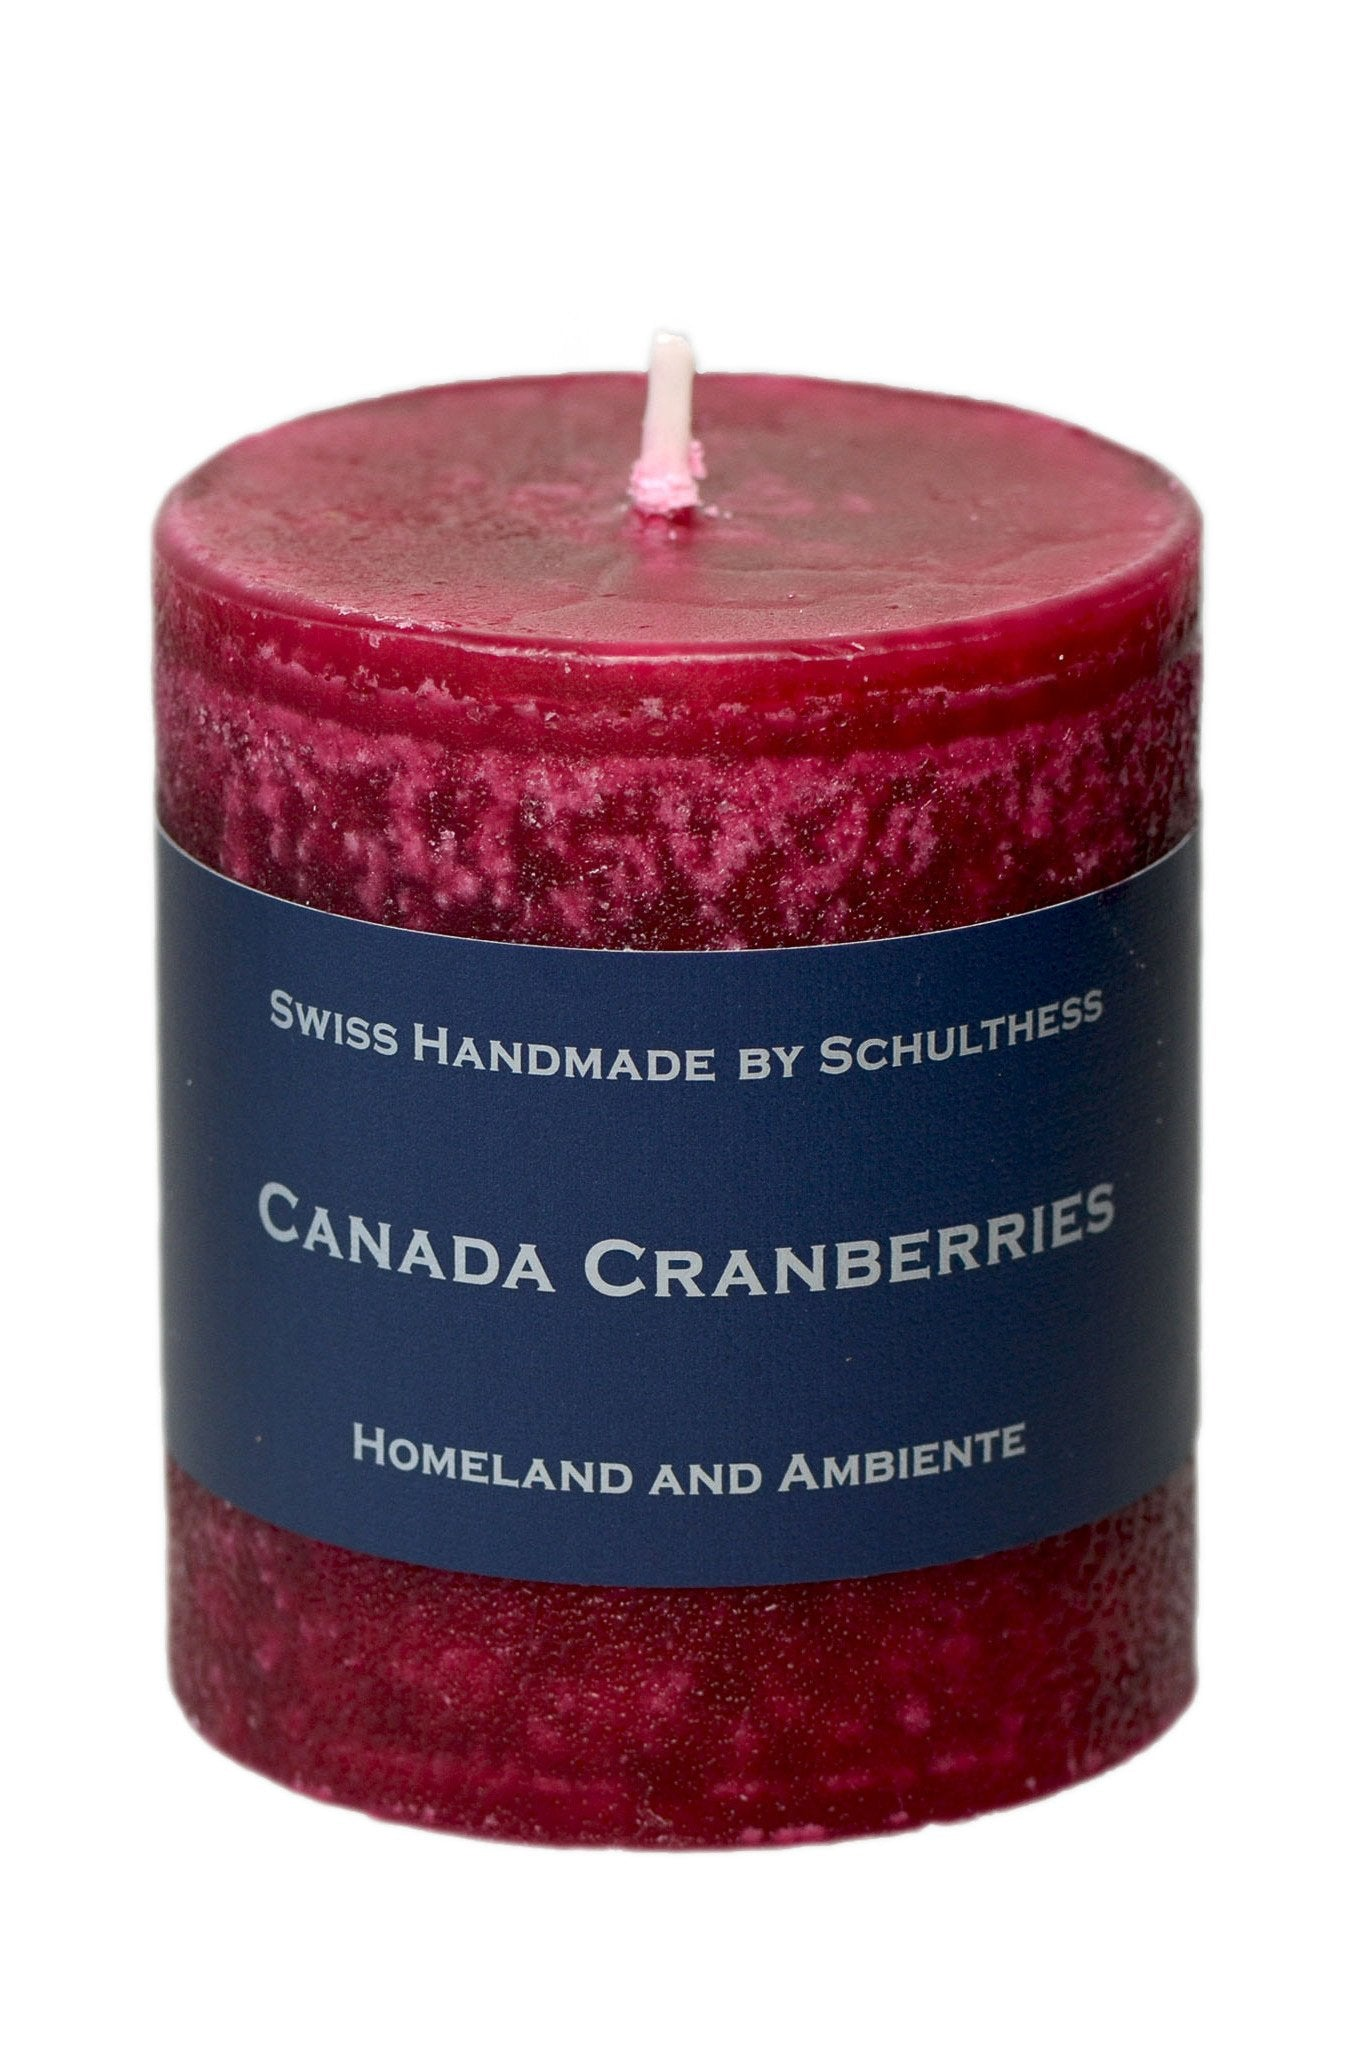 Schulthess Duftkerze, Canada Cranberries, Ø 70 mm Höhe 80 mm